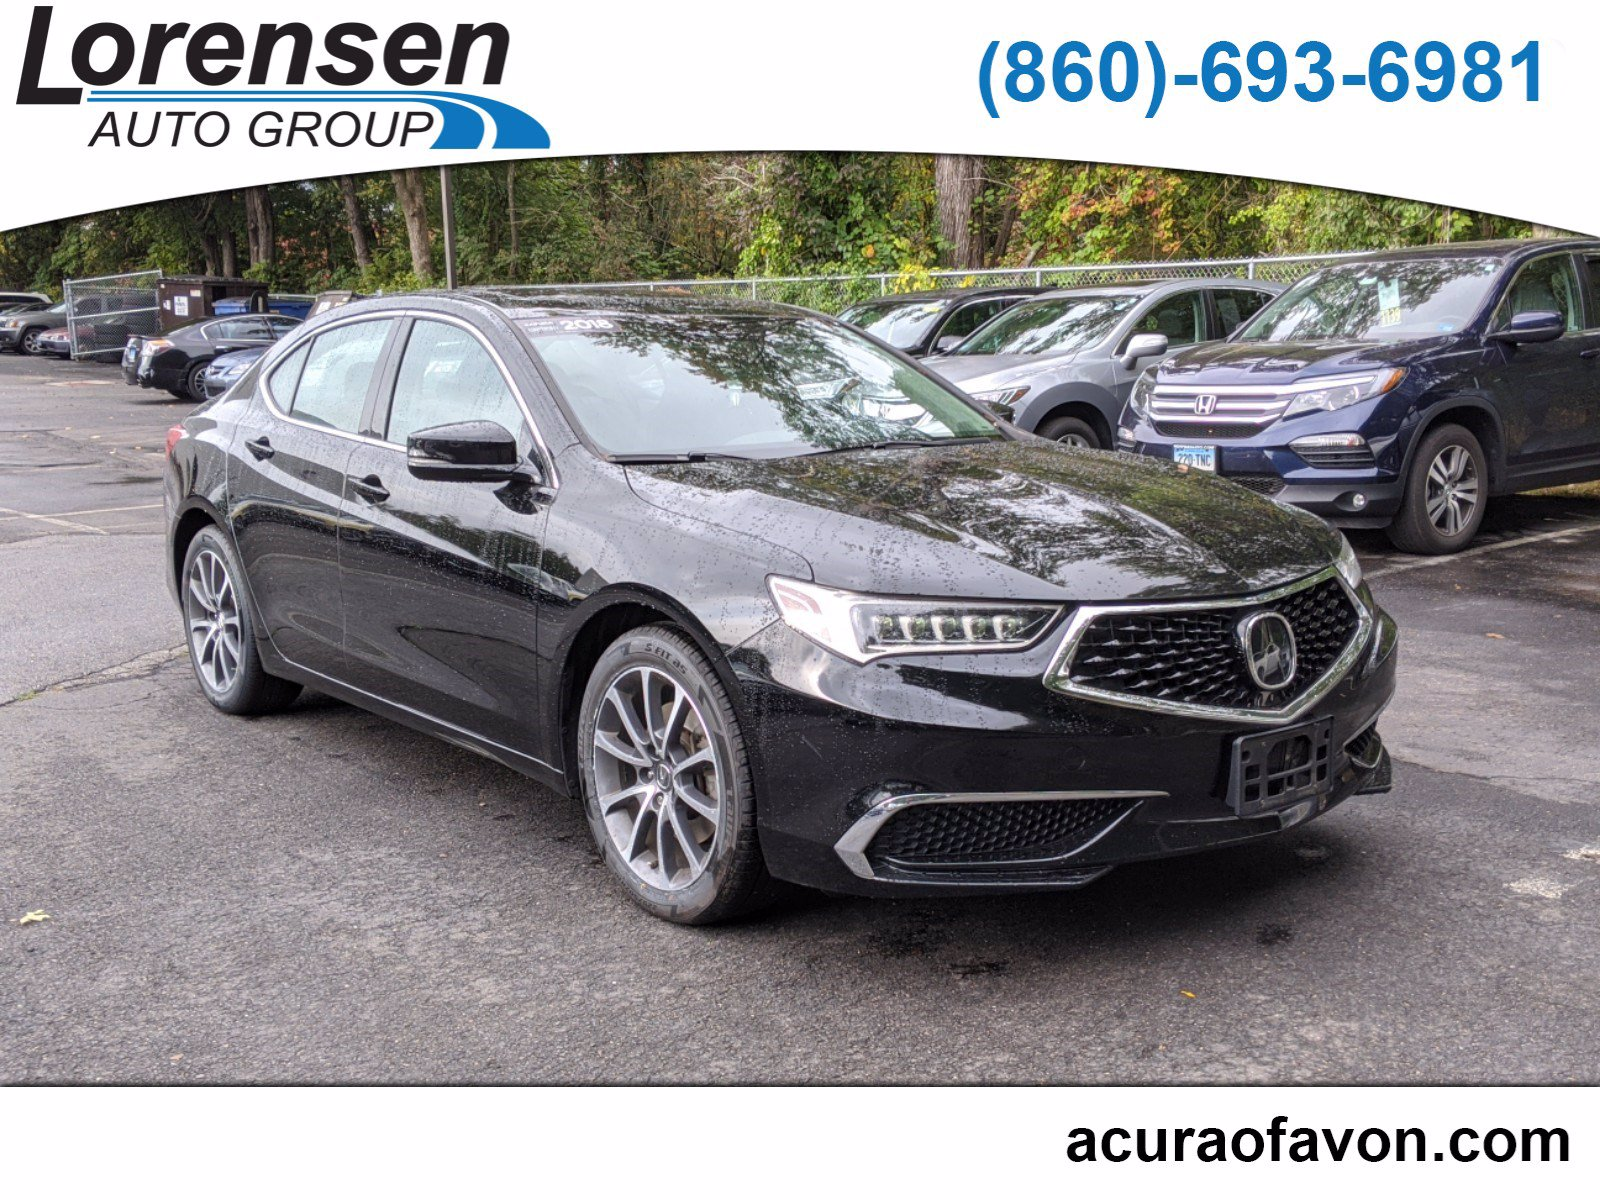 Certified Pre-Owned 2018 Acura TLX 3.5 V-6 9-AT P-AWS